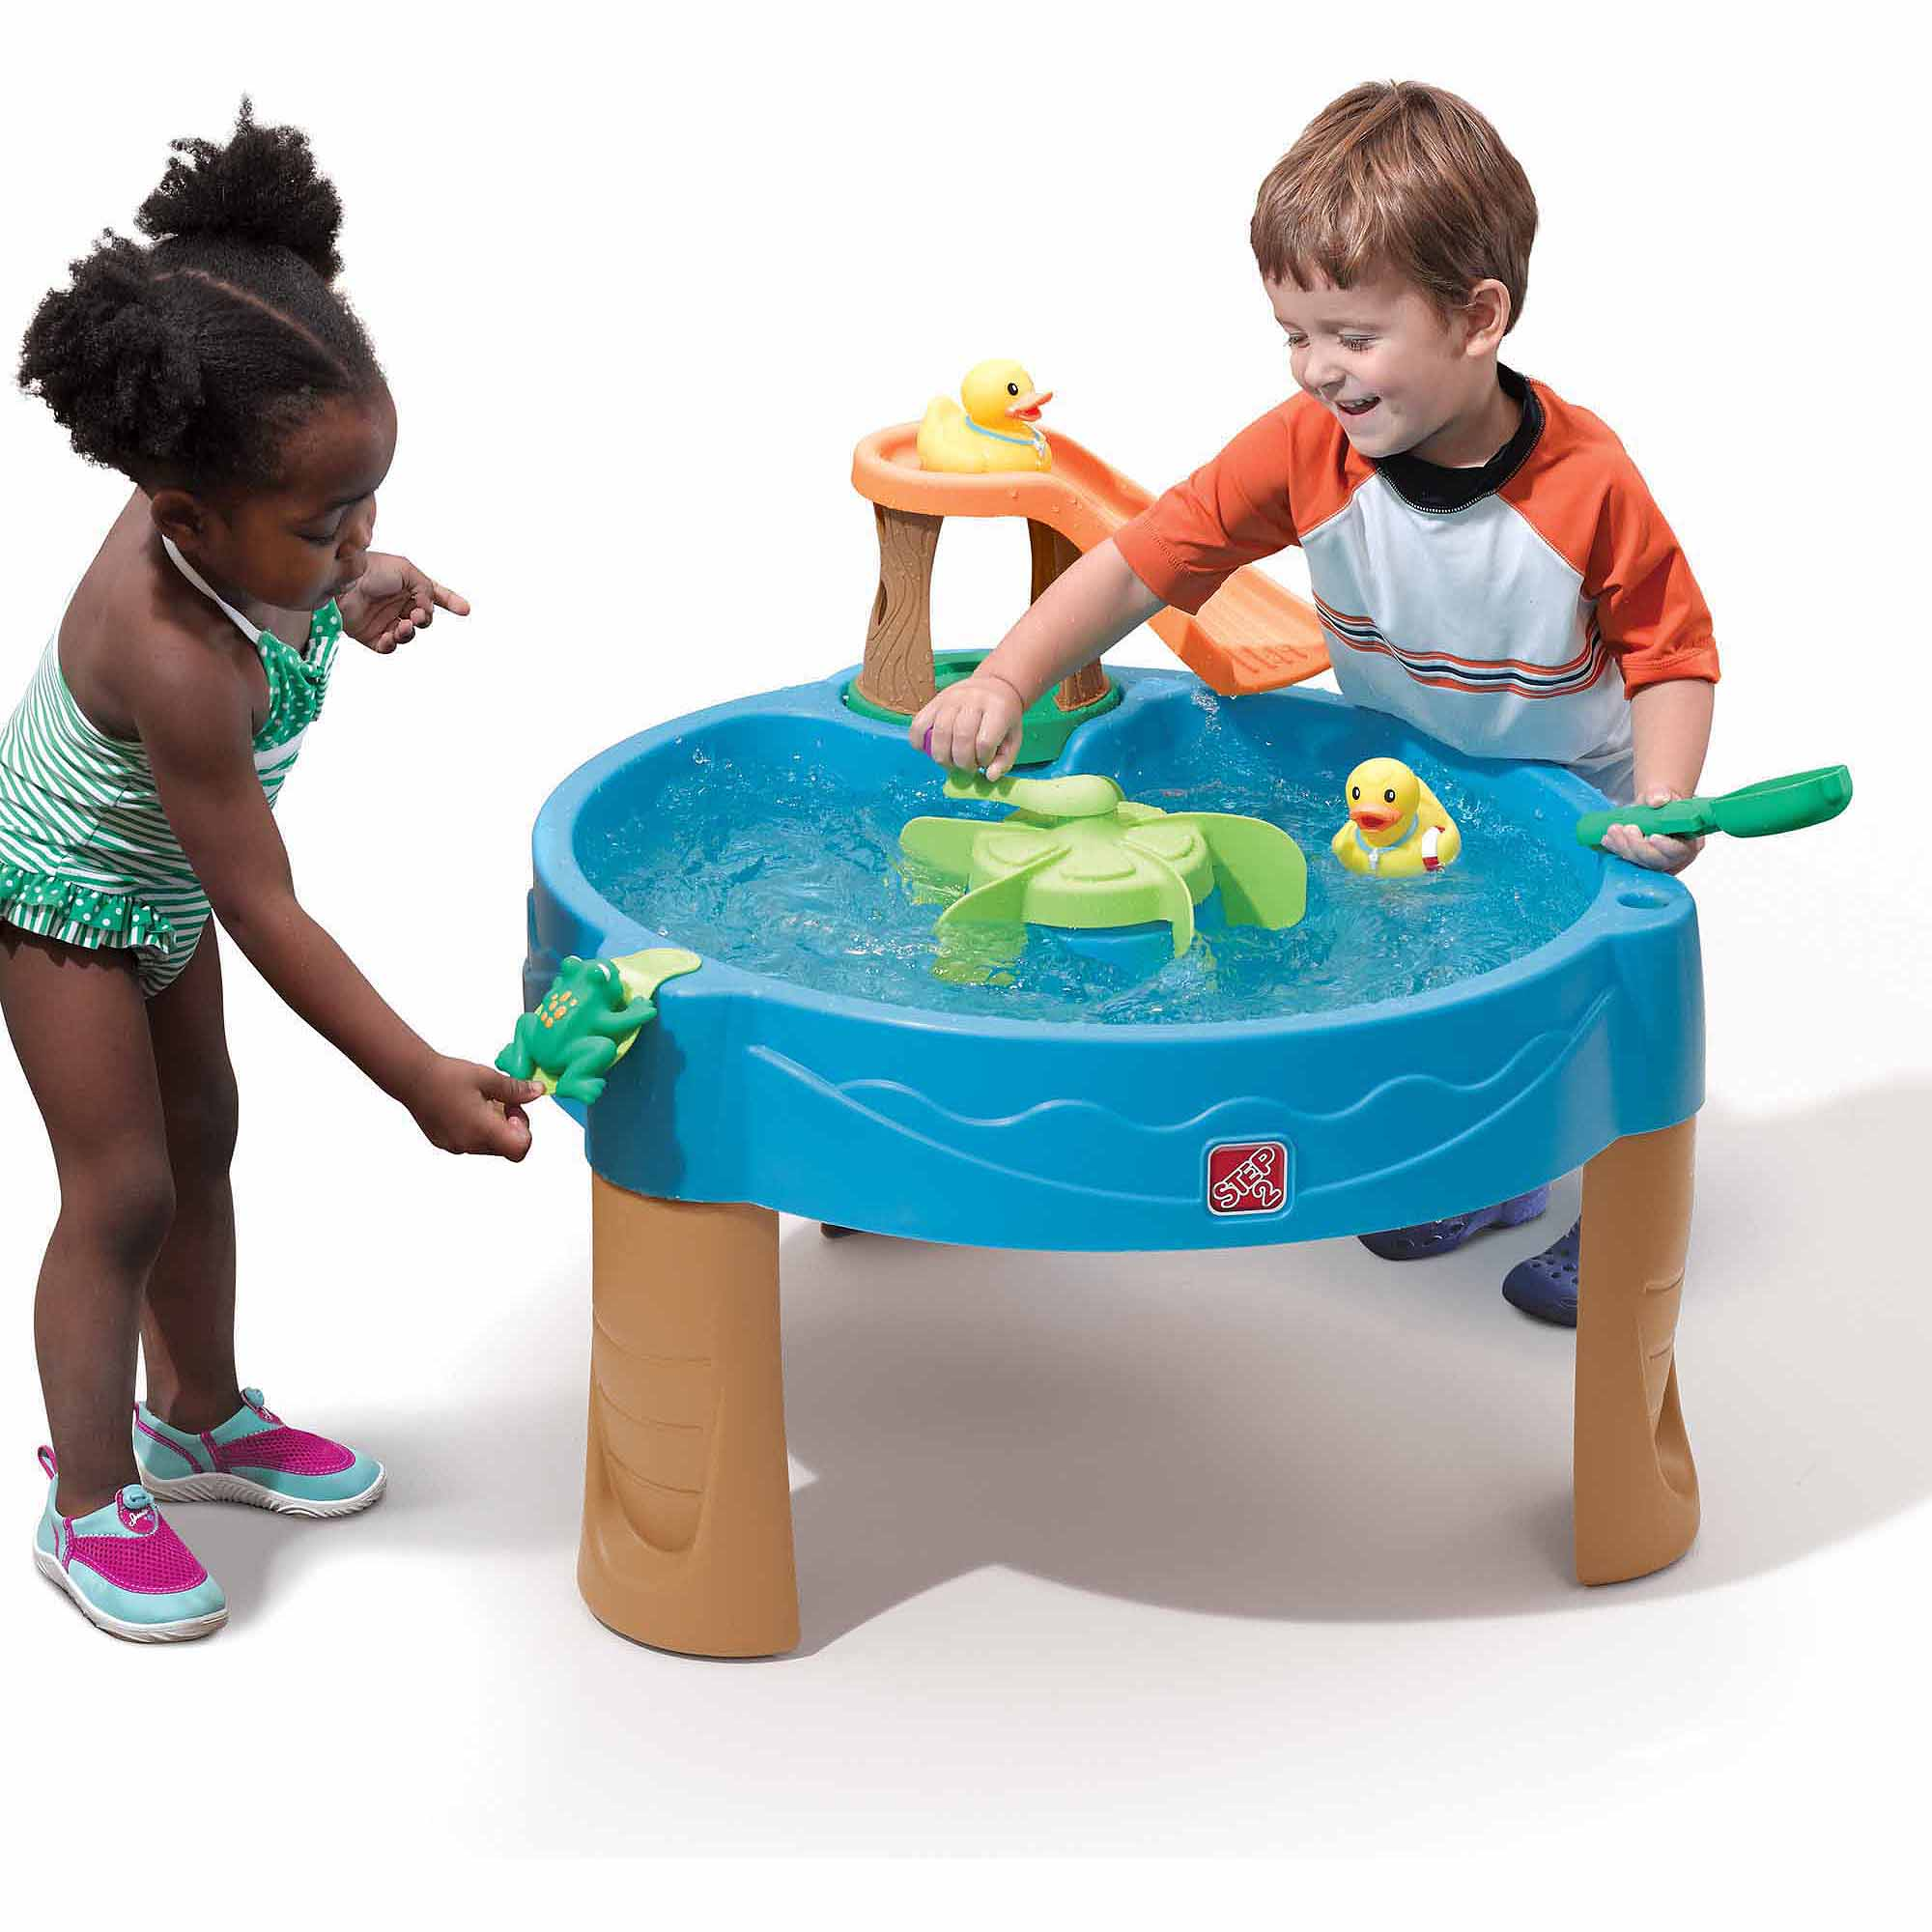 Step2 Duck Pond Water Table with Water Toys